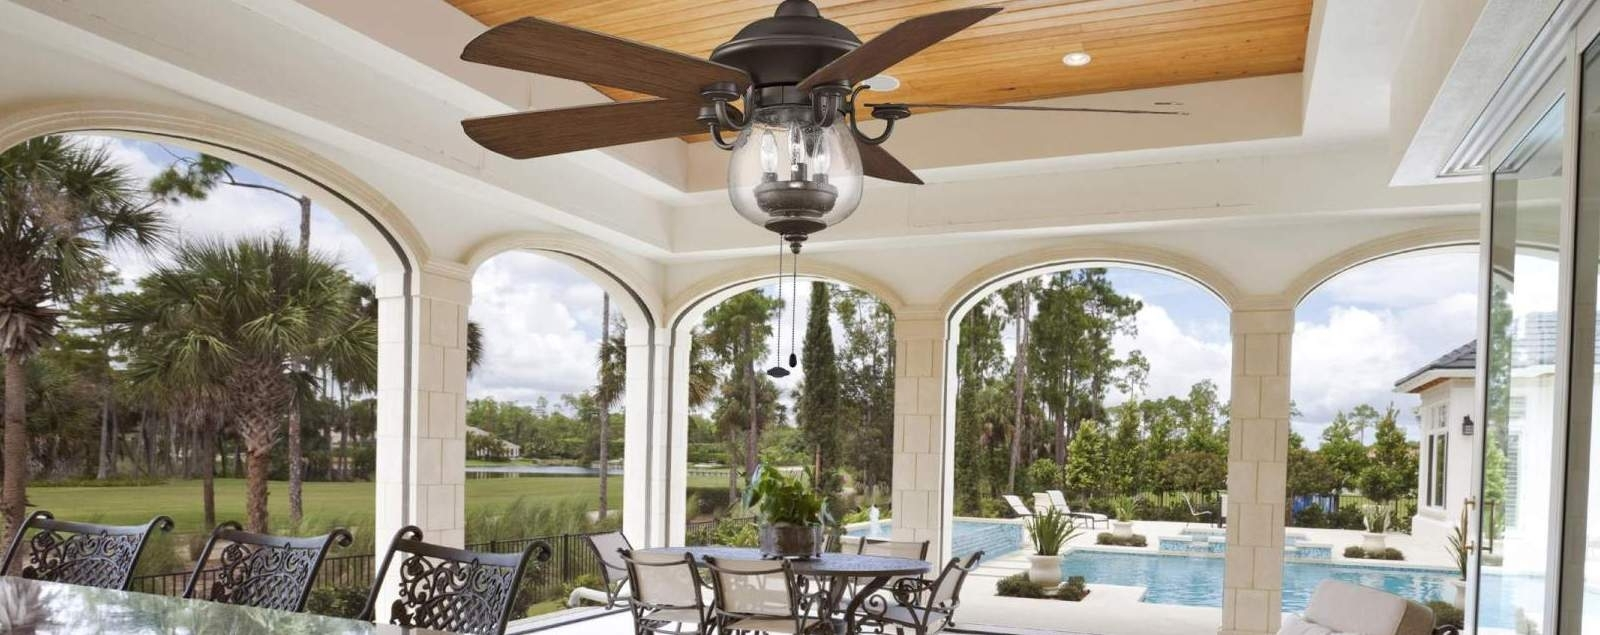 Wet Rated Emerson Outdoor Ceiling Fans Intended For Well Known Outdoor Ceiling Fans – Shop Wet, Dry, And Damp Rated Outdoor Fans (View 17 of 20)